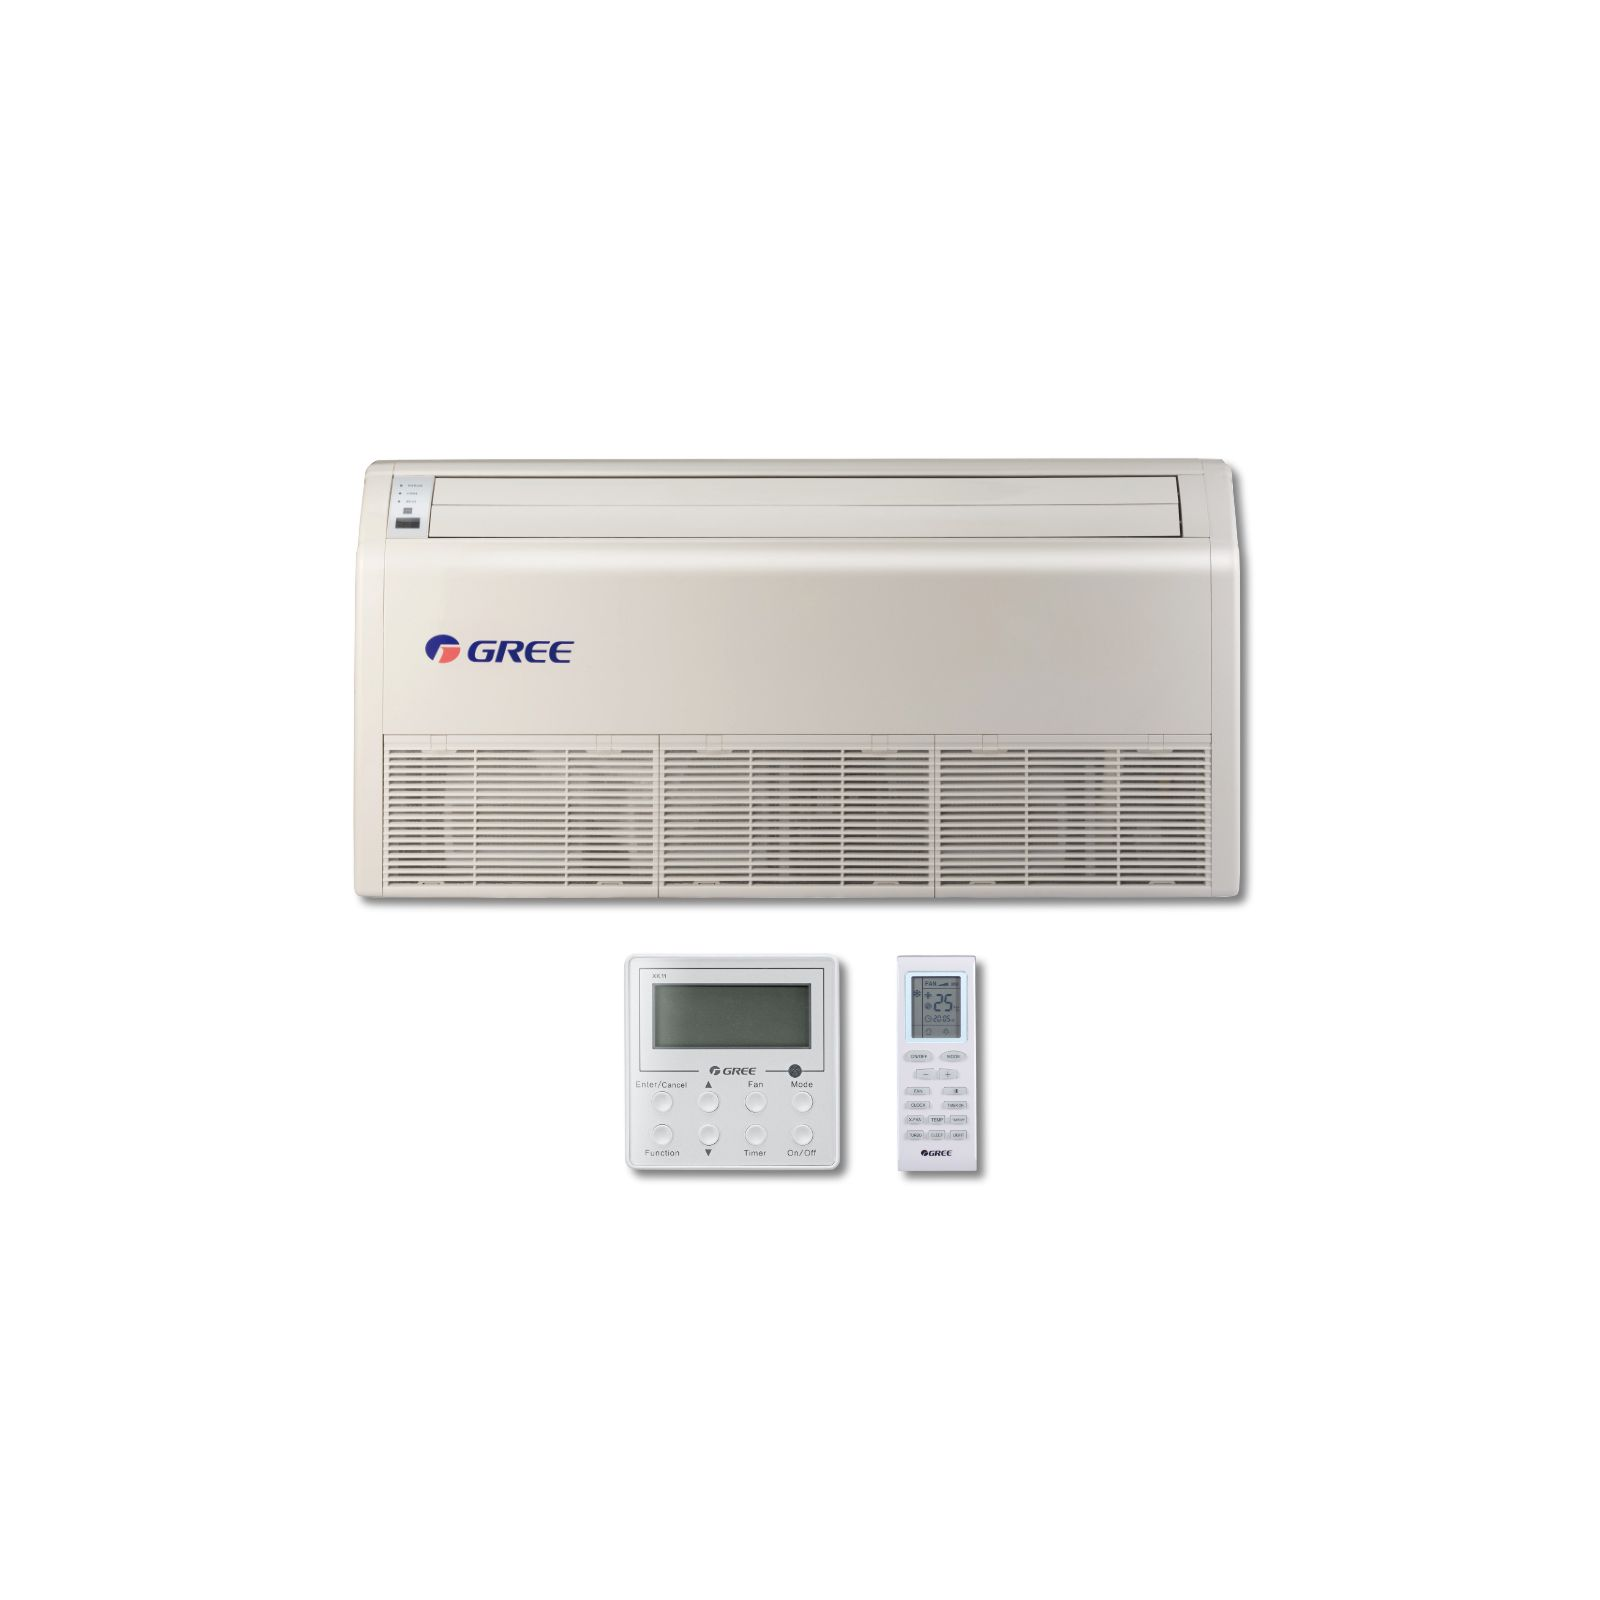 GREE FLR24HP230V1AF - Multi+ Universal Indoor Floor / Ceiling Heat Pump, 24K BTU, 208-230 V, 60 Hz